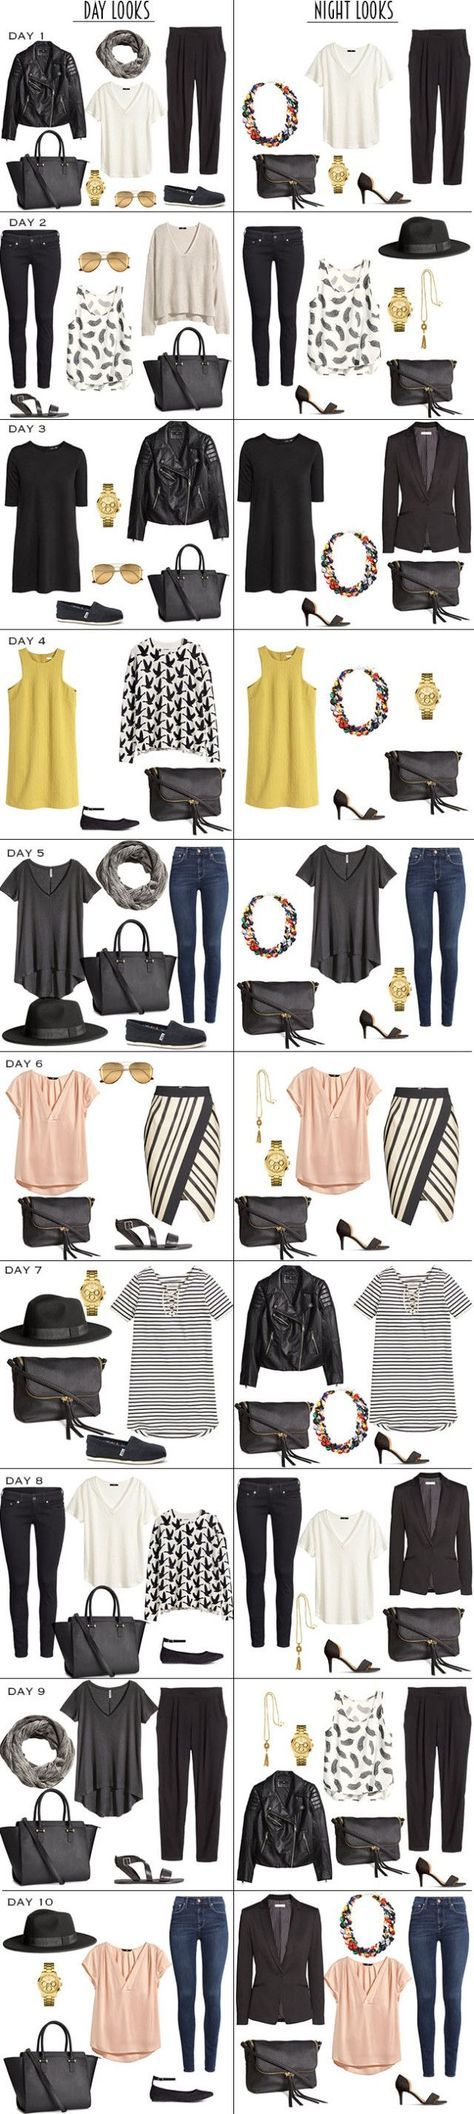 Pinterest And Packing Lists Fashion Capsule Wardrobe Cool Outfits